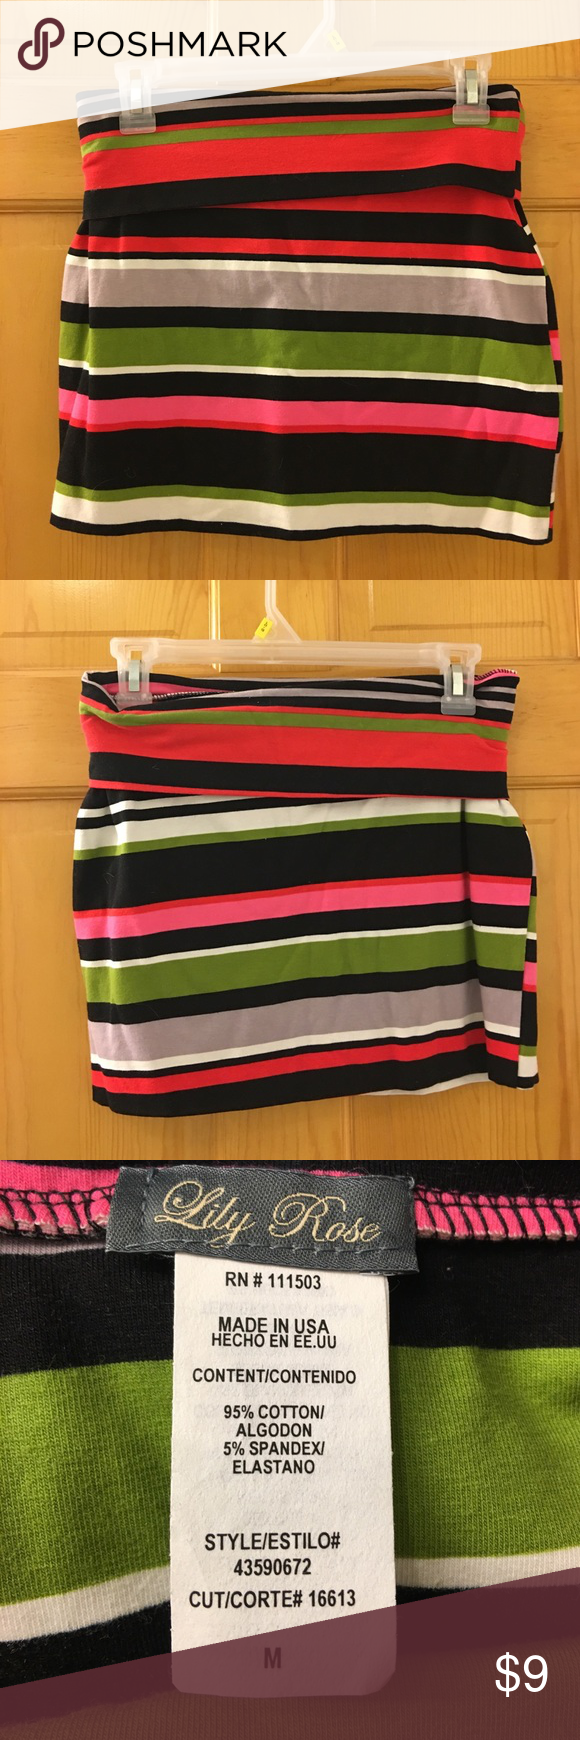 Striped skirt Women's size medium striped skirt. Worn one, no damage. Very comfortable-feels like yoga pants in skirt form! Fold over waist band. Clean, smoke free home. Always willing to negotiate prices! Lily Rose Skirts Mini